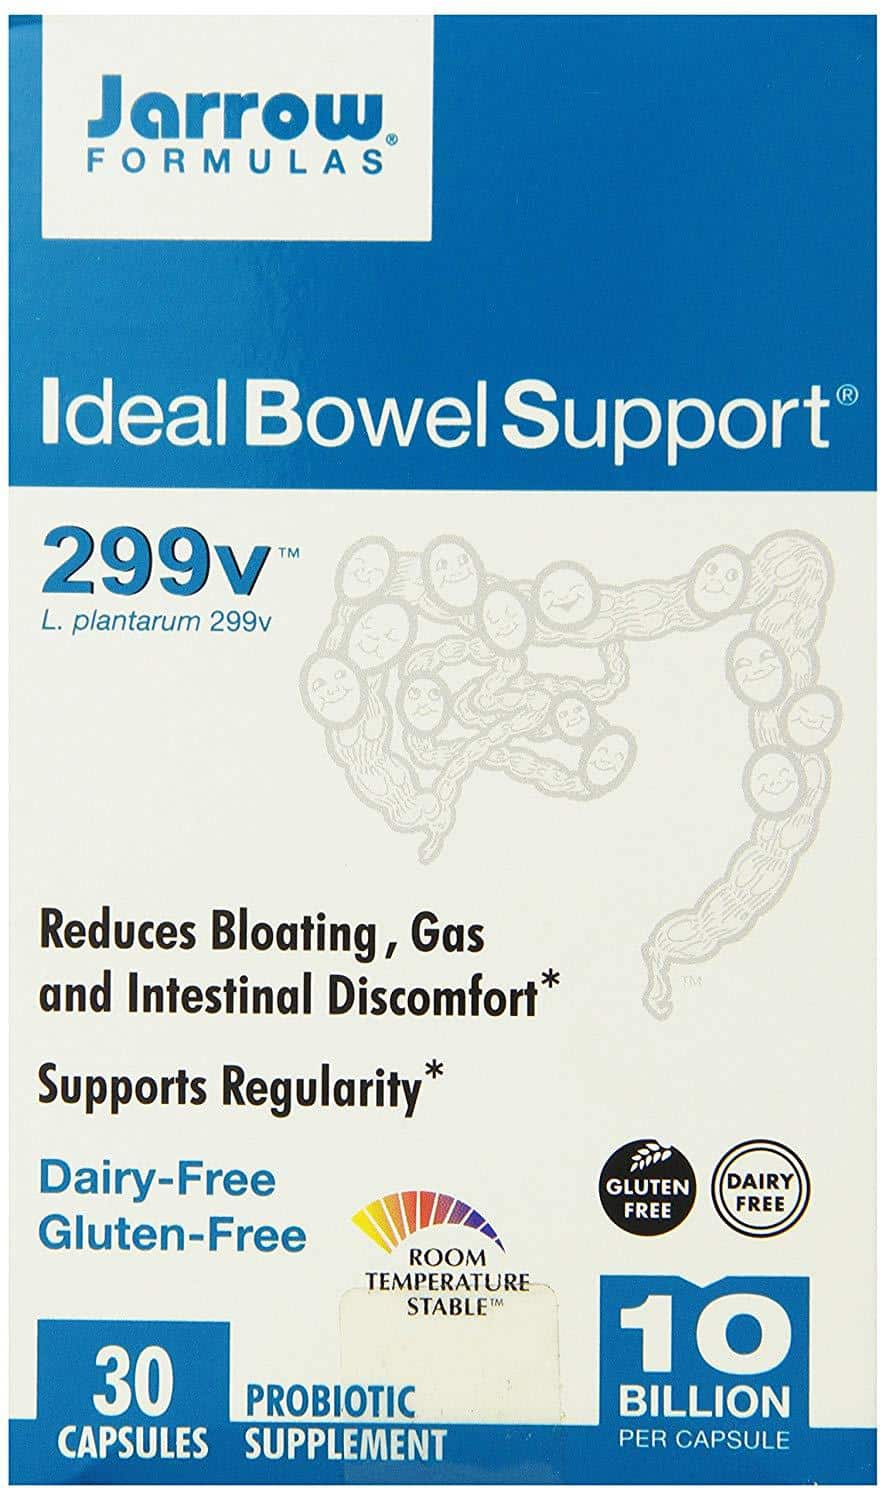 Jarrow-Formulas-Ideal-Bowel-Support-299v